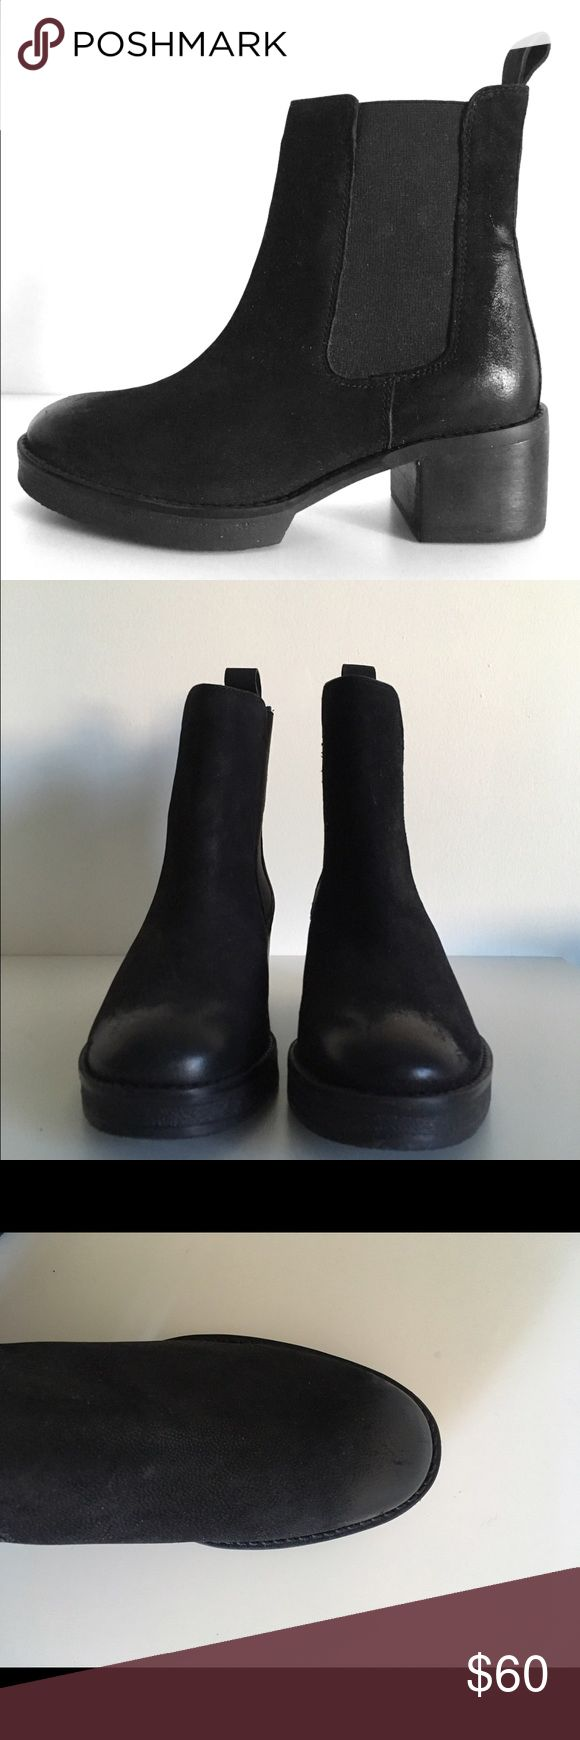 """Asos Chelsea Boots Classic Nubuck Leather Chelsea Boots US size6/ UK size4. (Size conversion according to asos website) Never worn. 2"""" heel with 3/4"""" platform at front. ASOS Shoes Ankle Boots & Booties"""